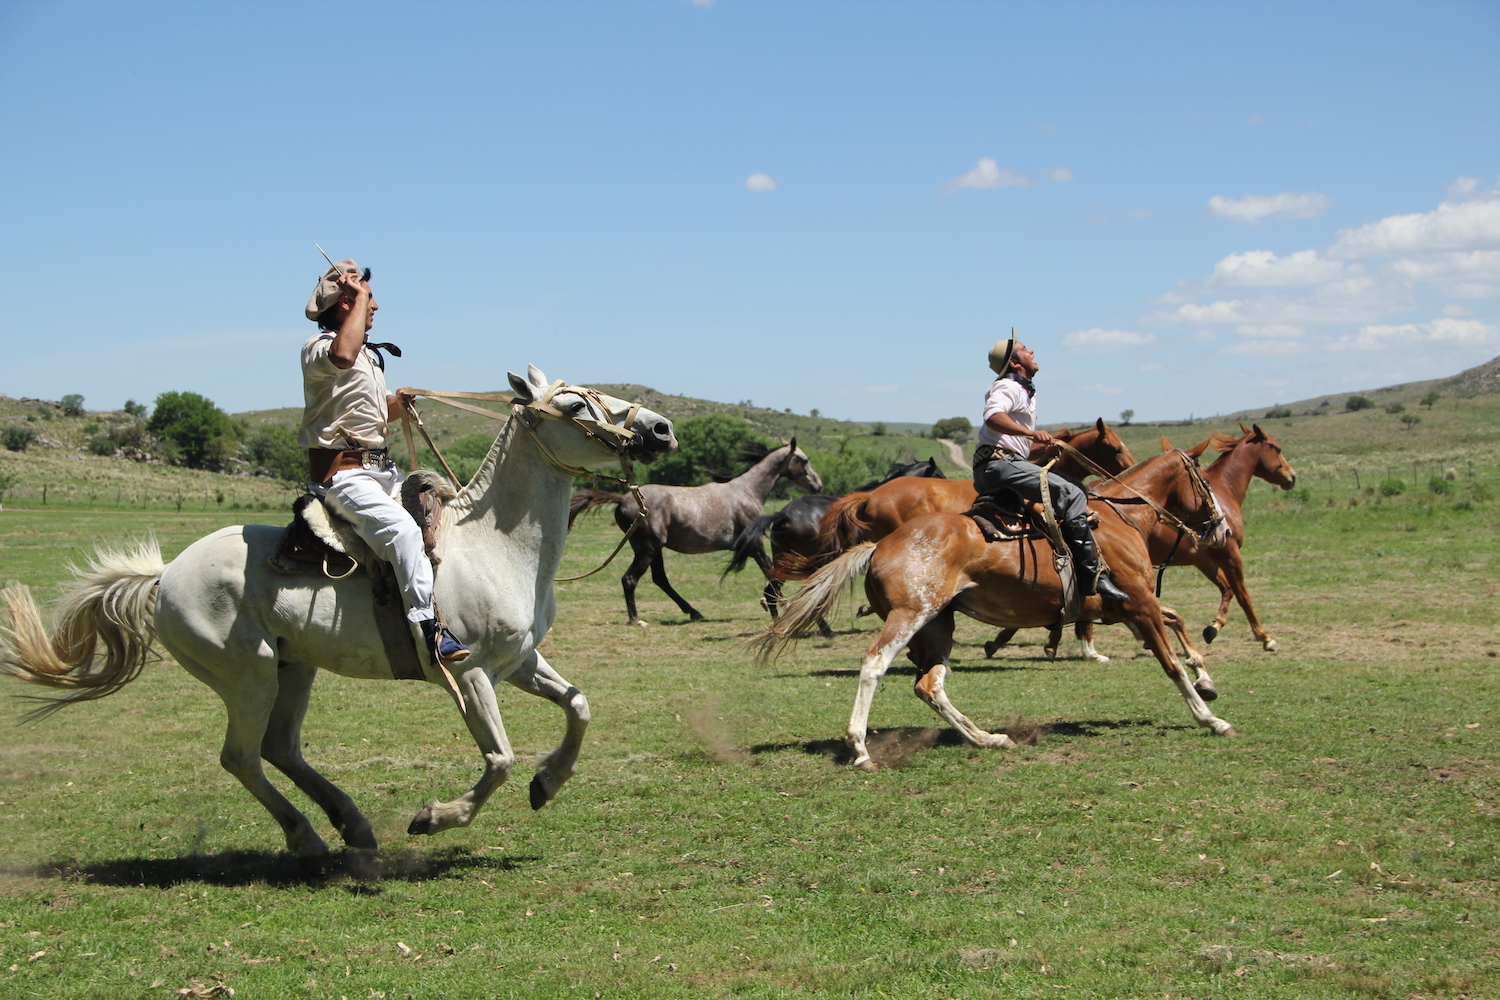 Riding with the gauchos in Argentina